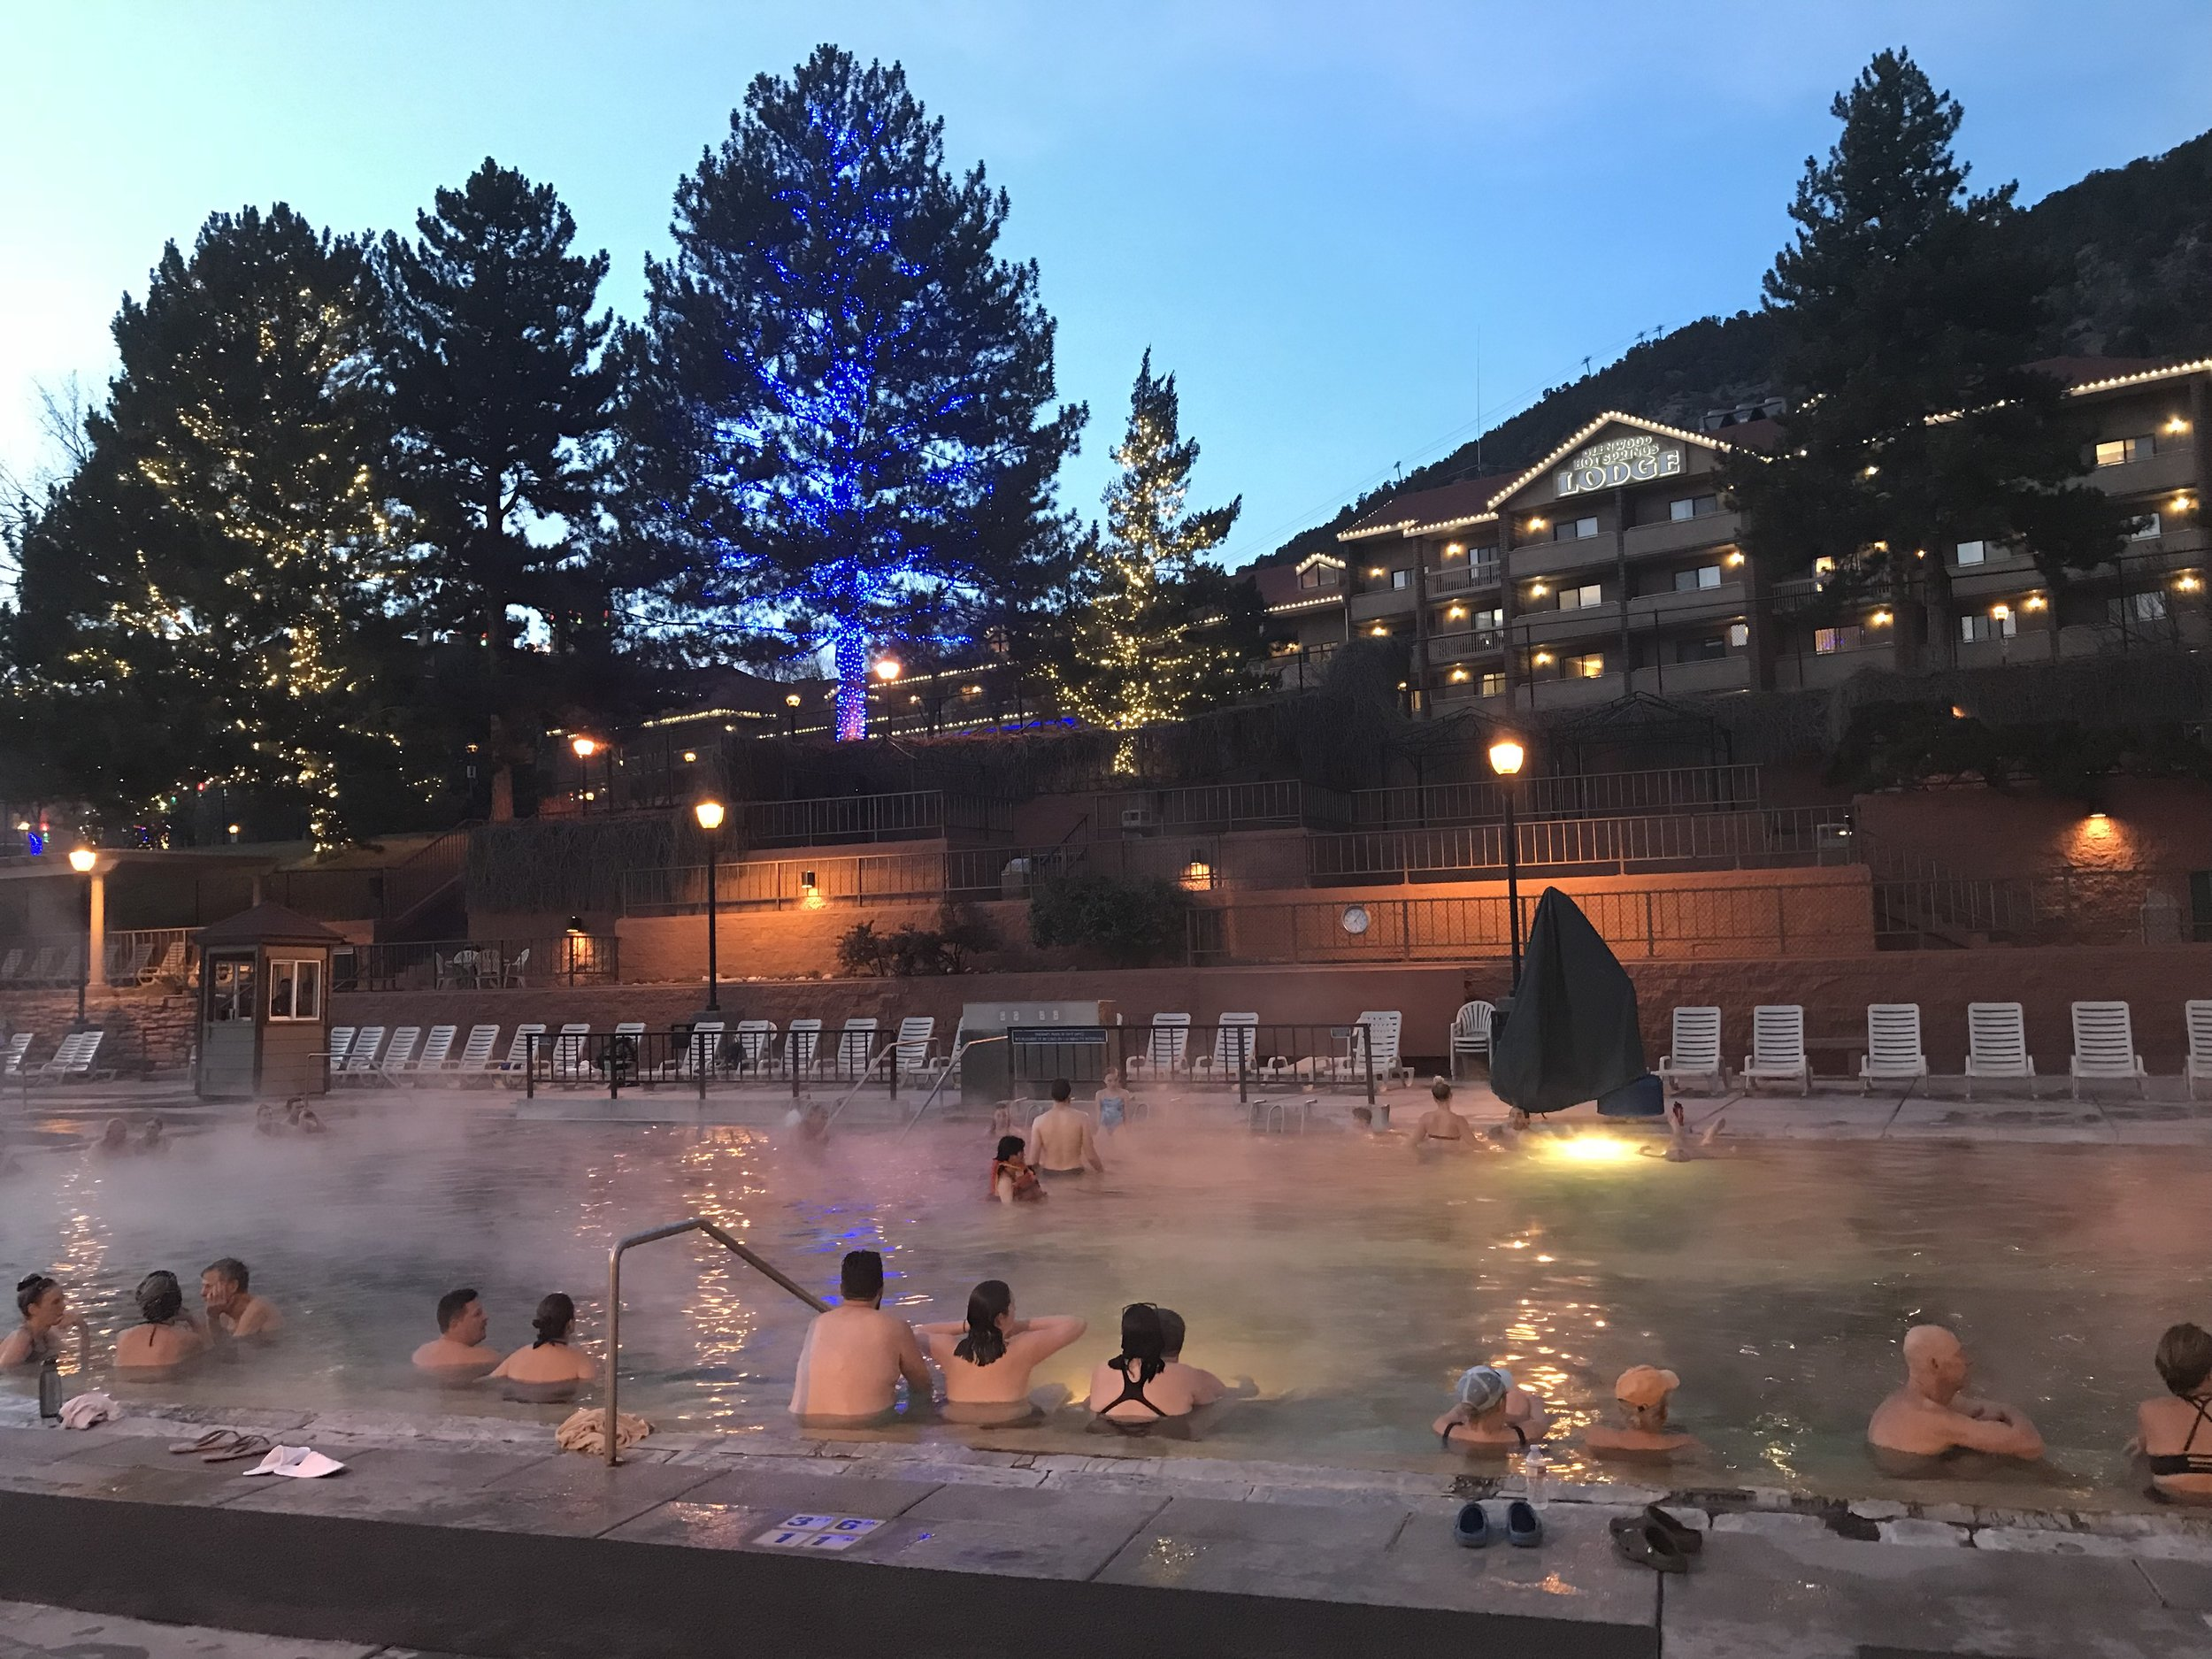 Glenwood Hot Springs Pool Holiday Lights